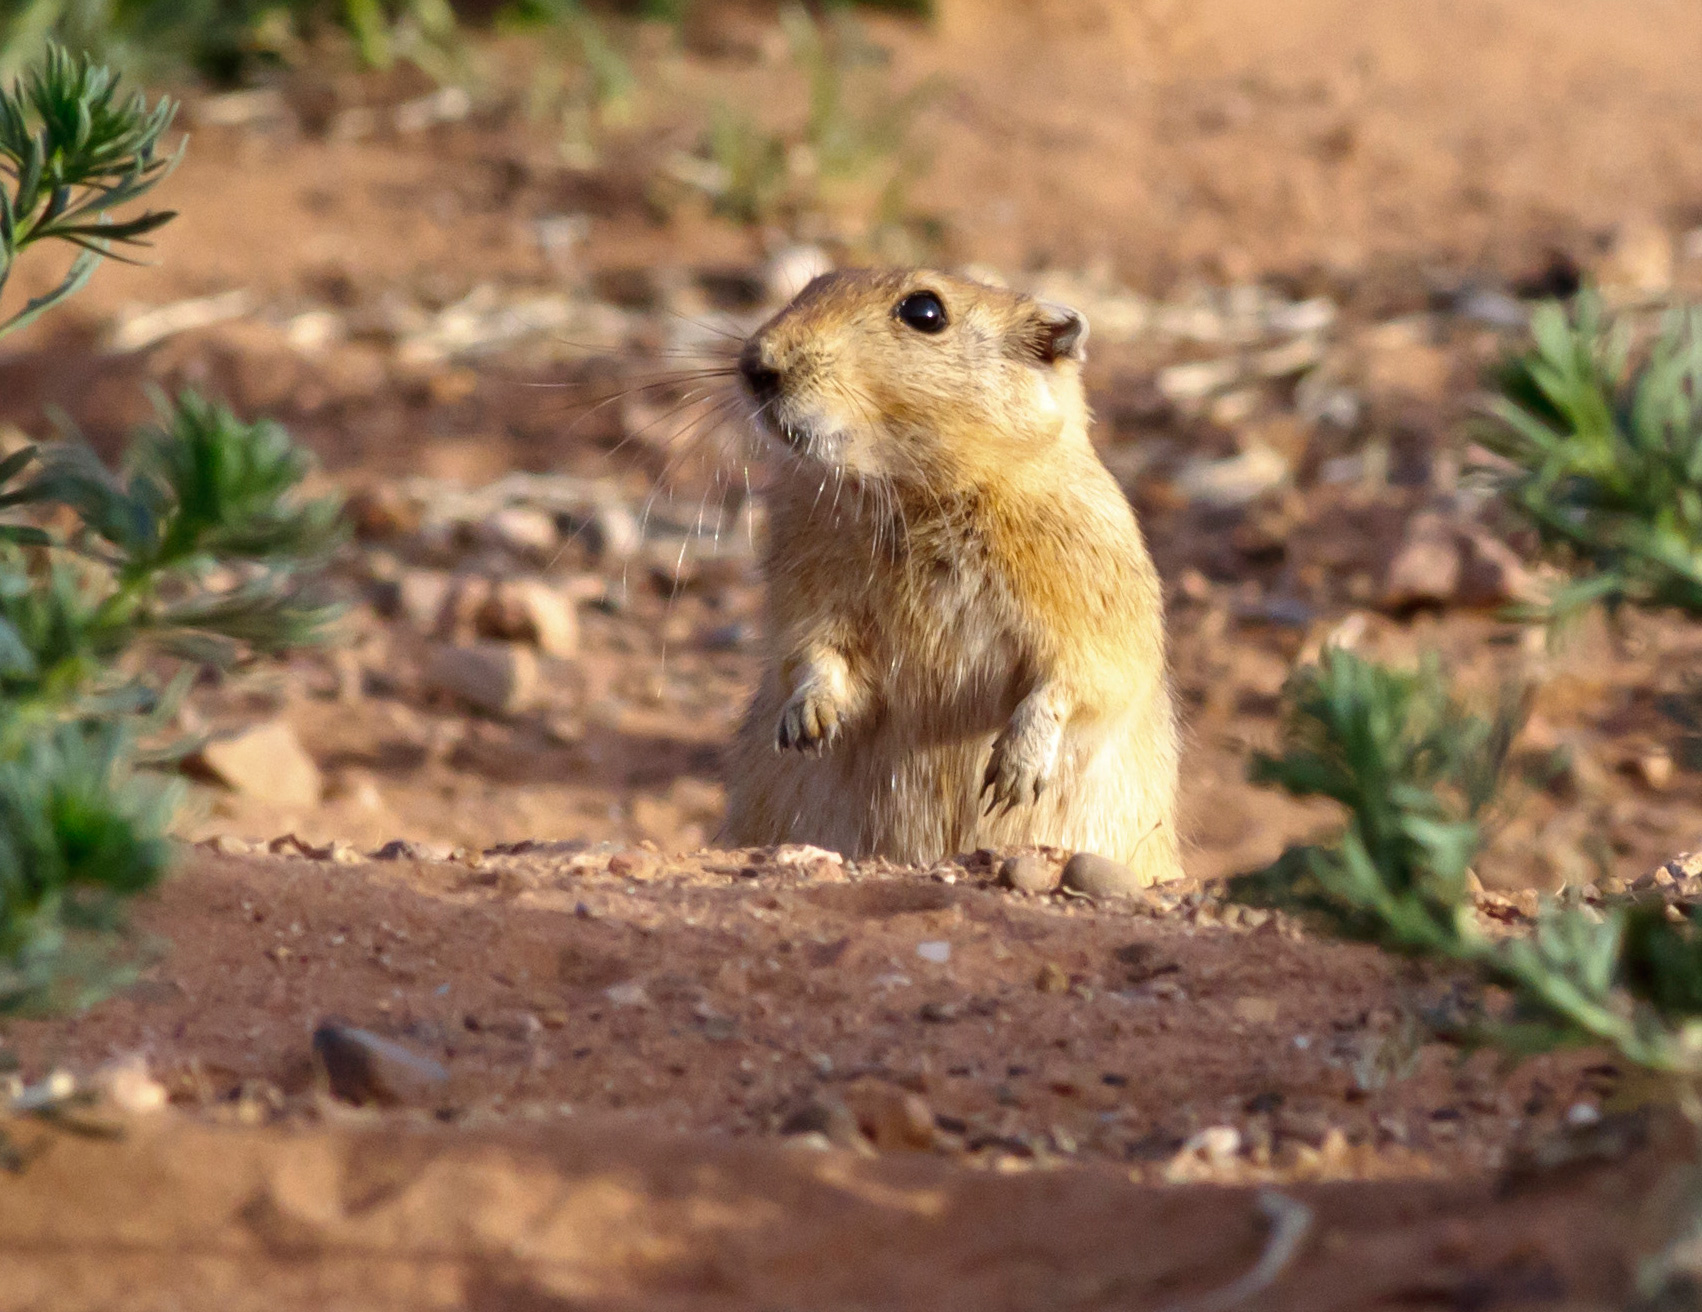 Genetic engineering wikipedia - Researchers In A Recent Study Found That Sand Rats Have Dark Dna Wikipedia Commons